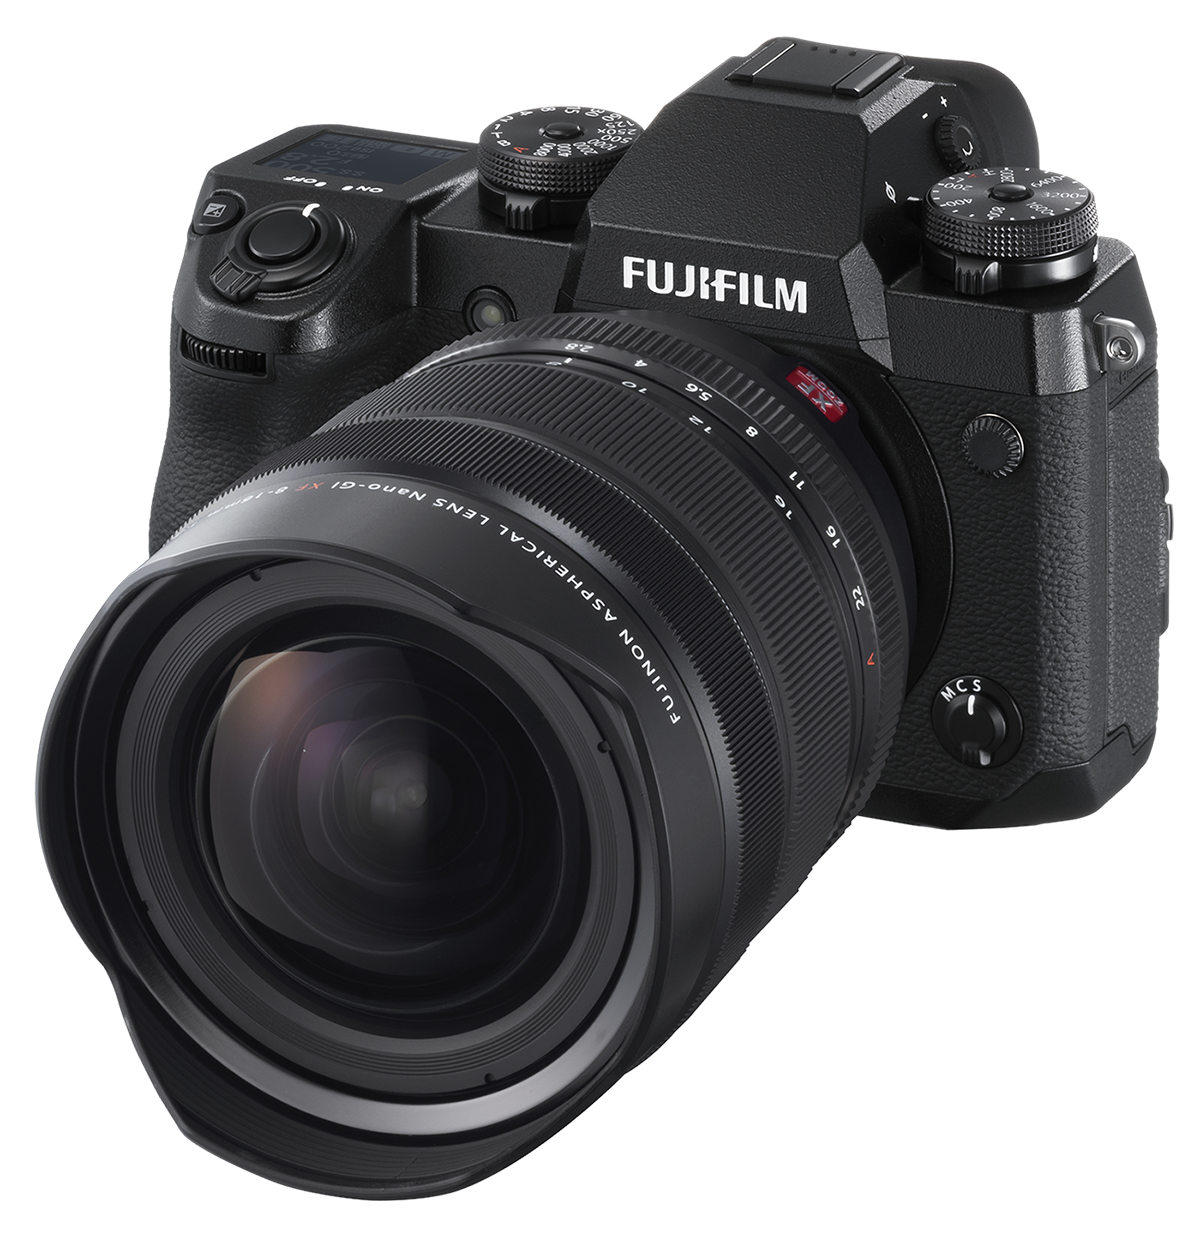 JUST ANNOUNCED: The FUJINON XF 8-16mm F2.8 R LM WR